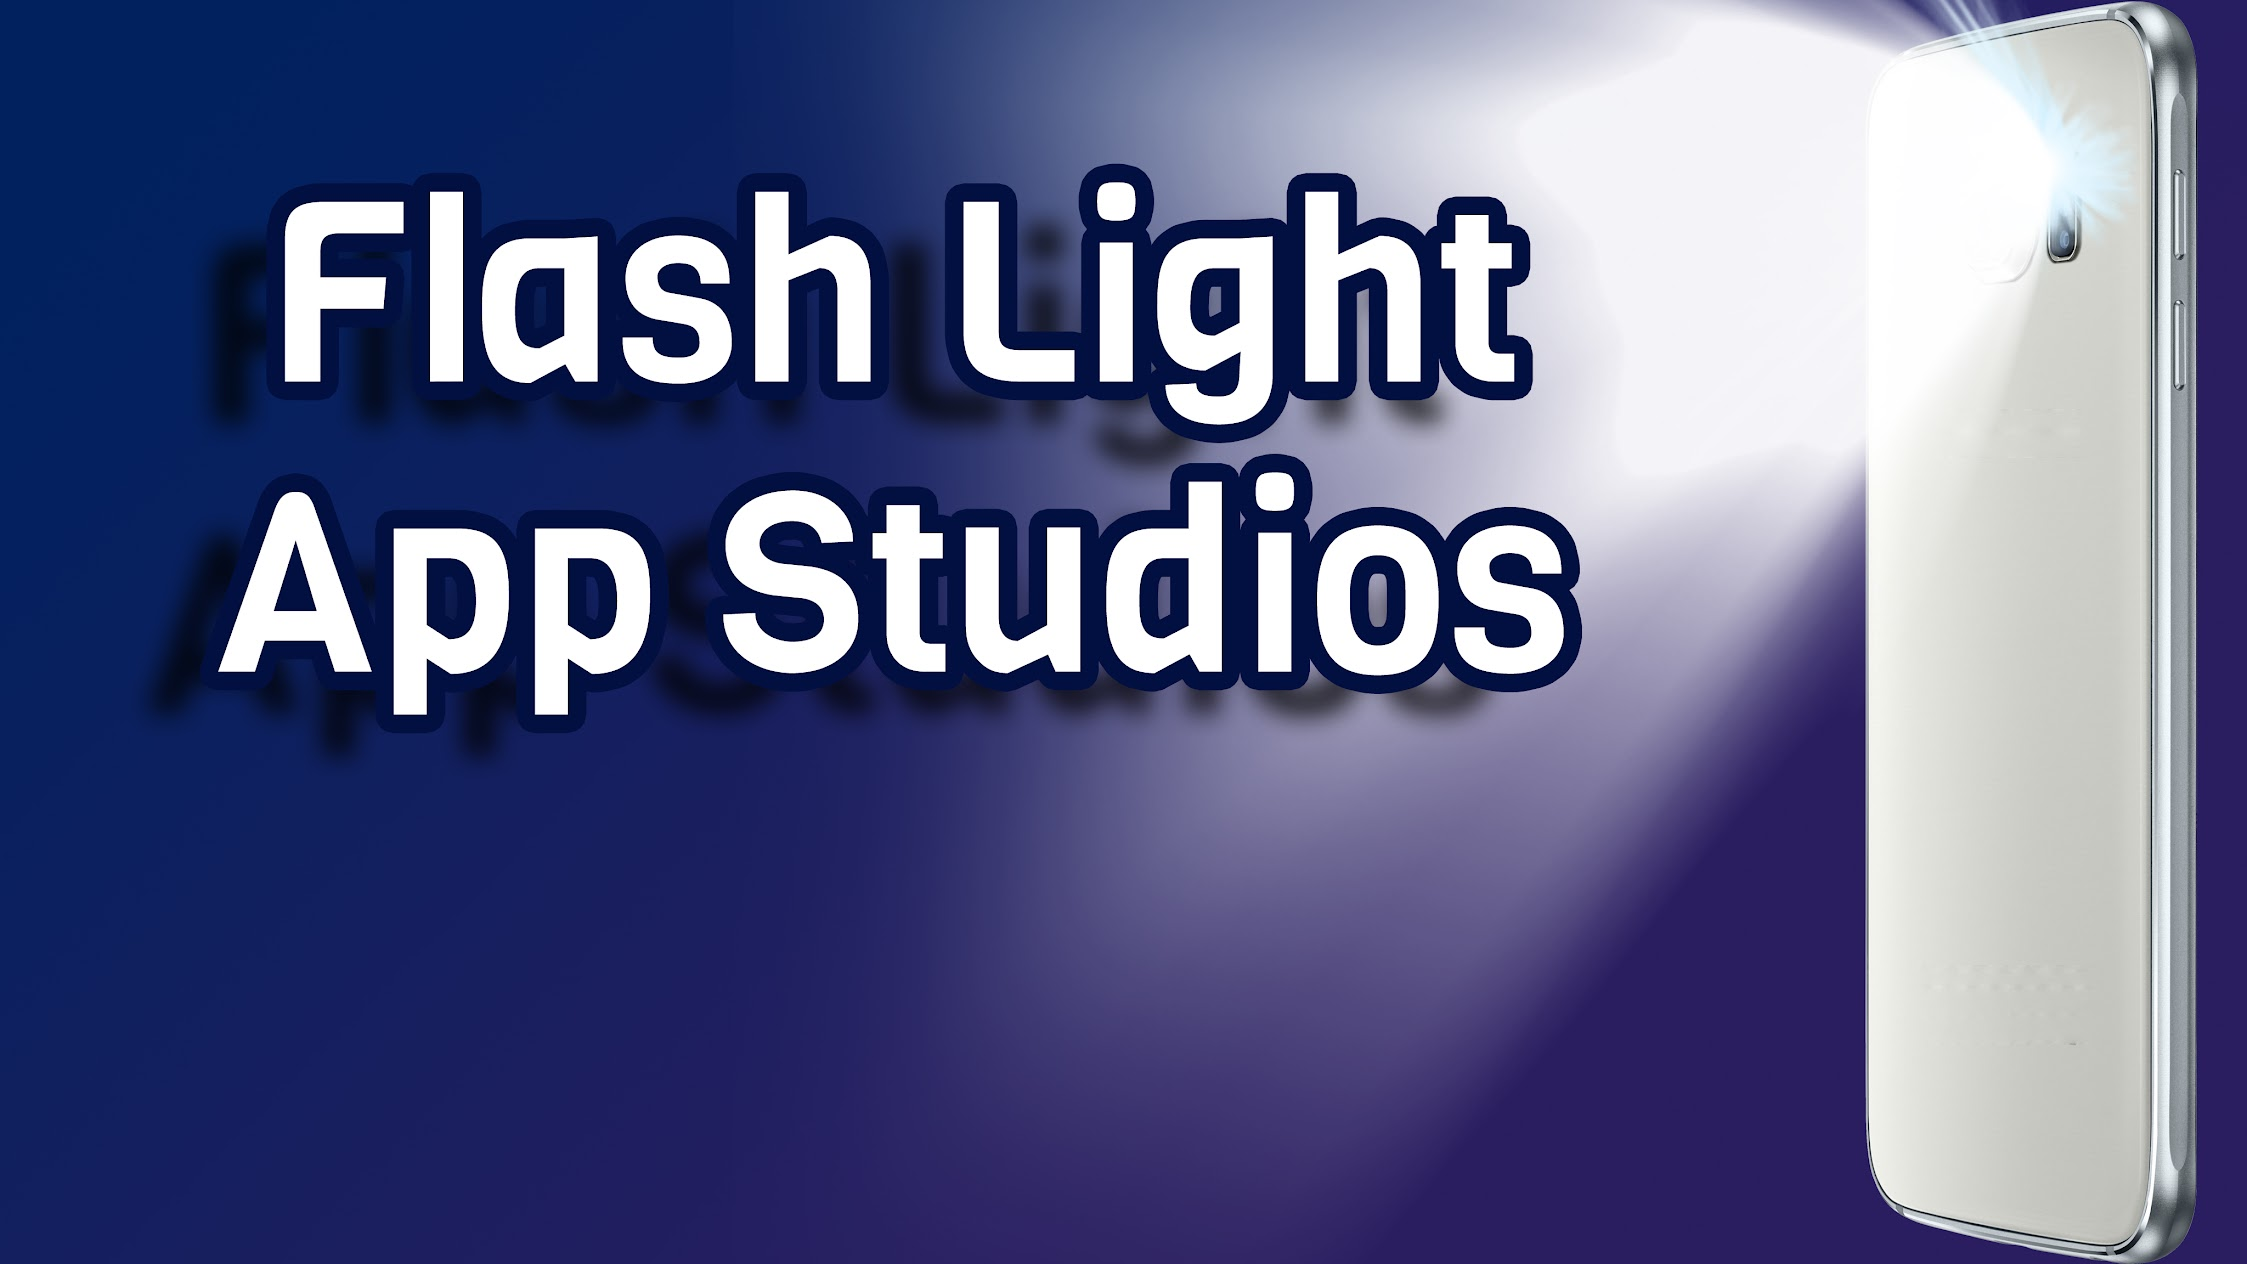 Flashlight Studios